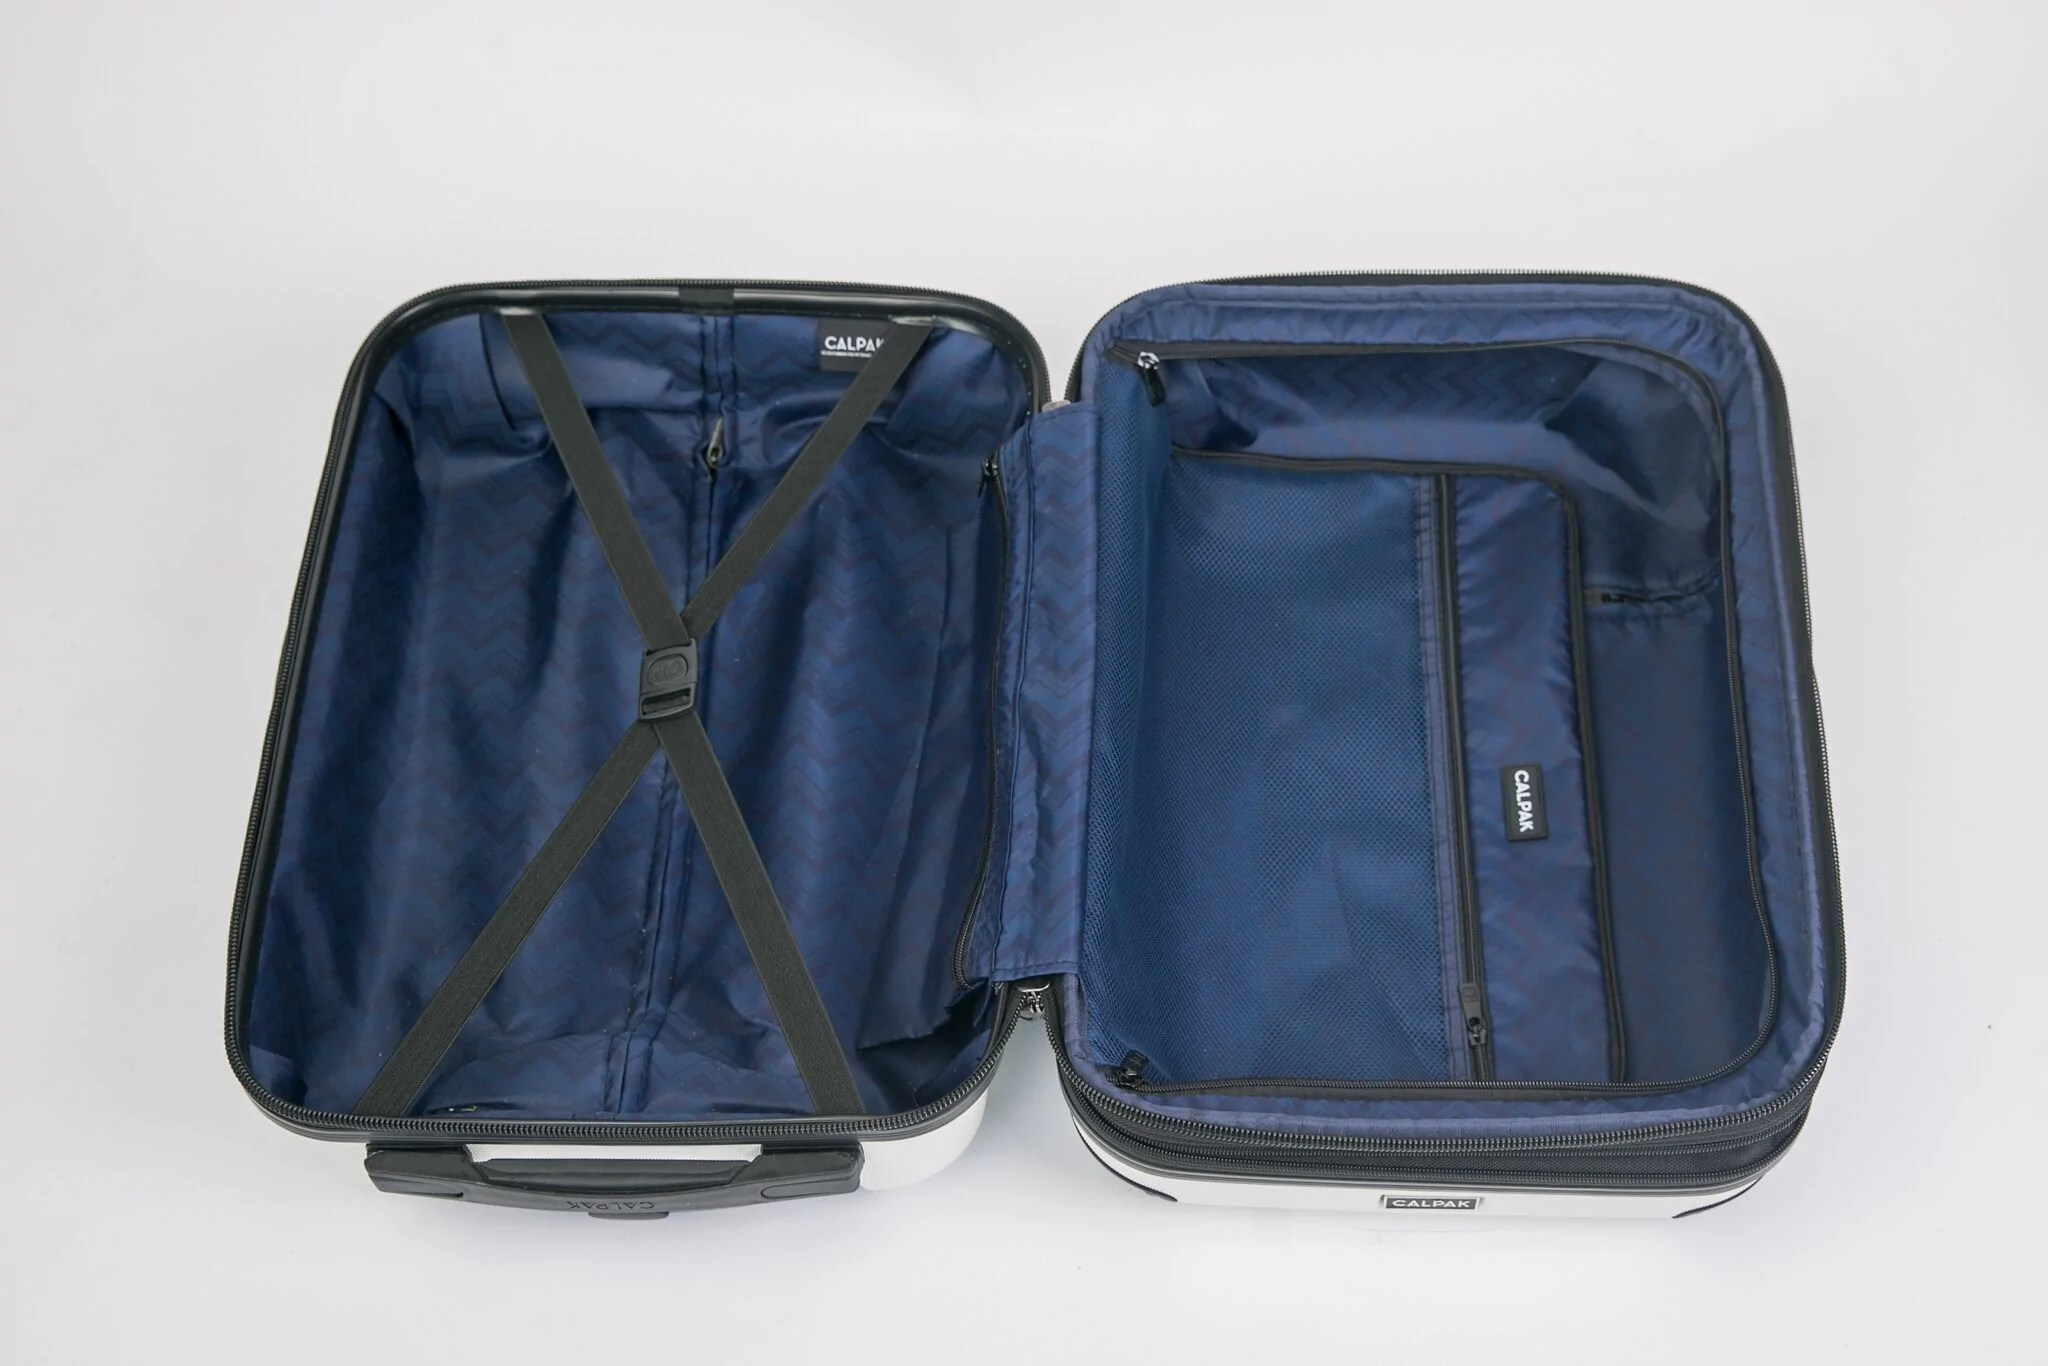 Travel Luggage Organiser The Pros And Cons Of Using A Travel Luggage Organizer Ezpacking Inc